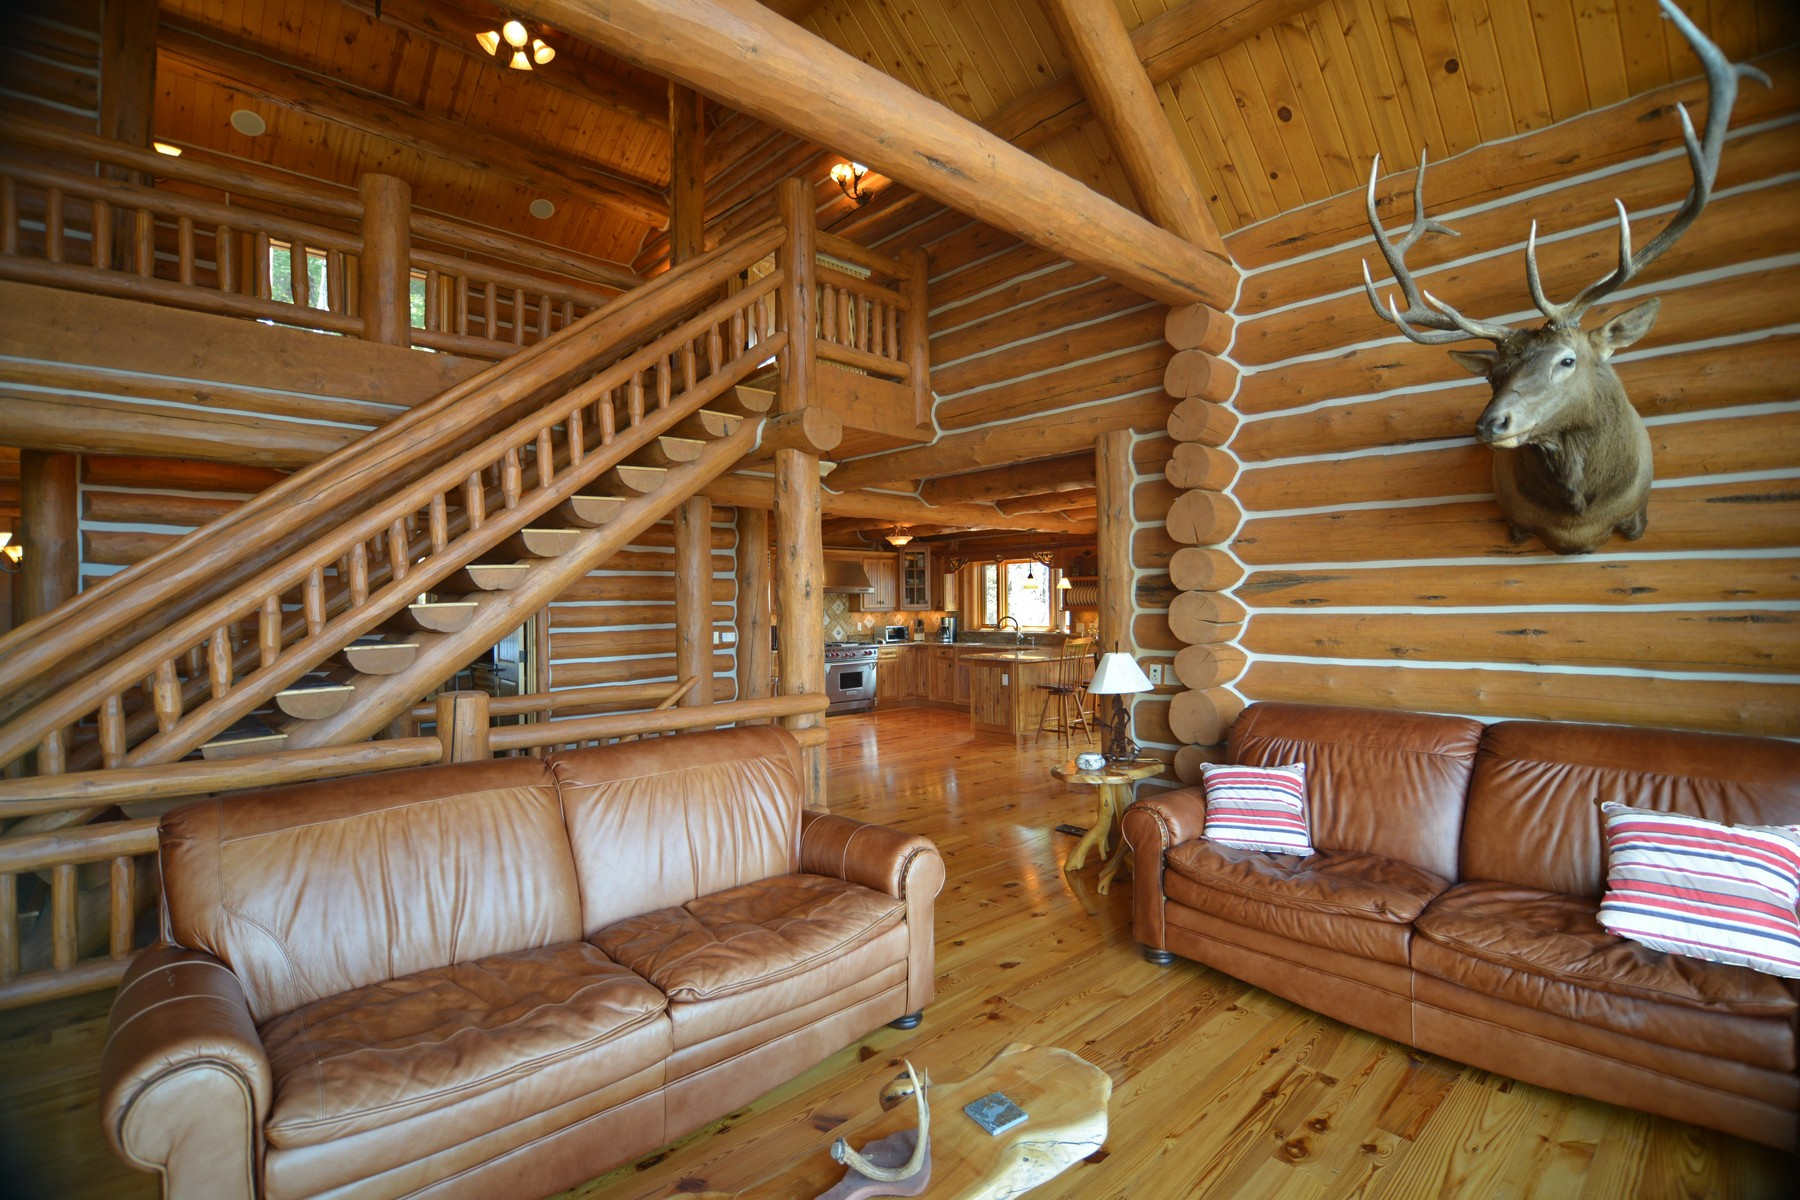 Casa Unifamiliar por un Venta en Cabin in the Woods 155 Forest Glenn Road Glenwood Springs, Colorado 81601 Estados Unidos